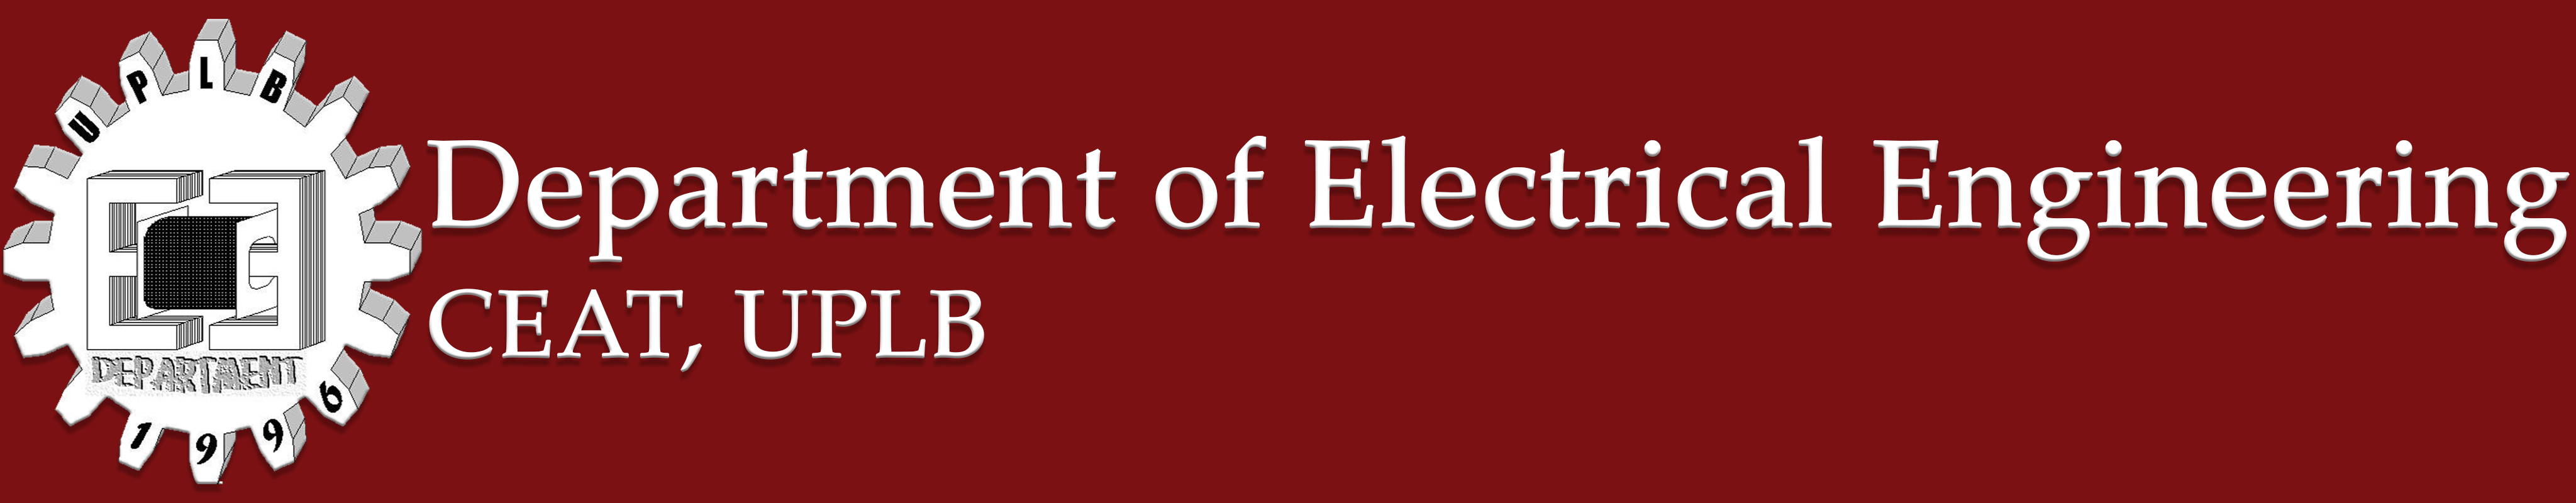 UPLB Department of Electrical Engineering